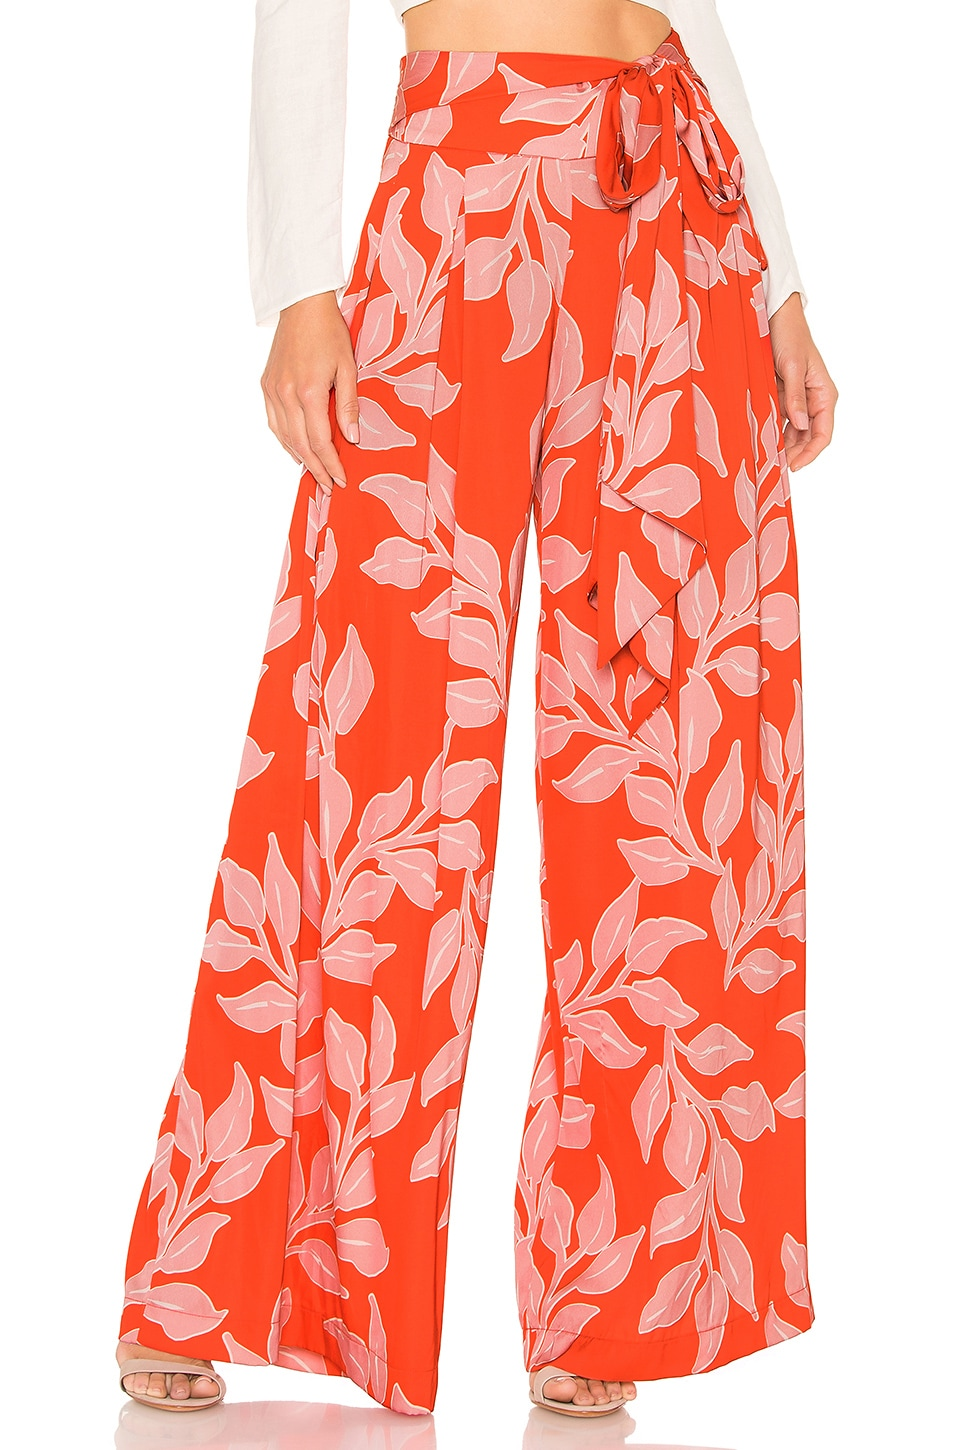 PatBO Leaf Print Wide Leg Pant in Hot Pink